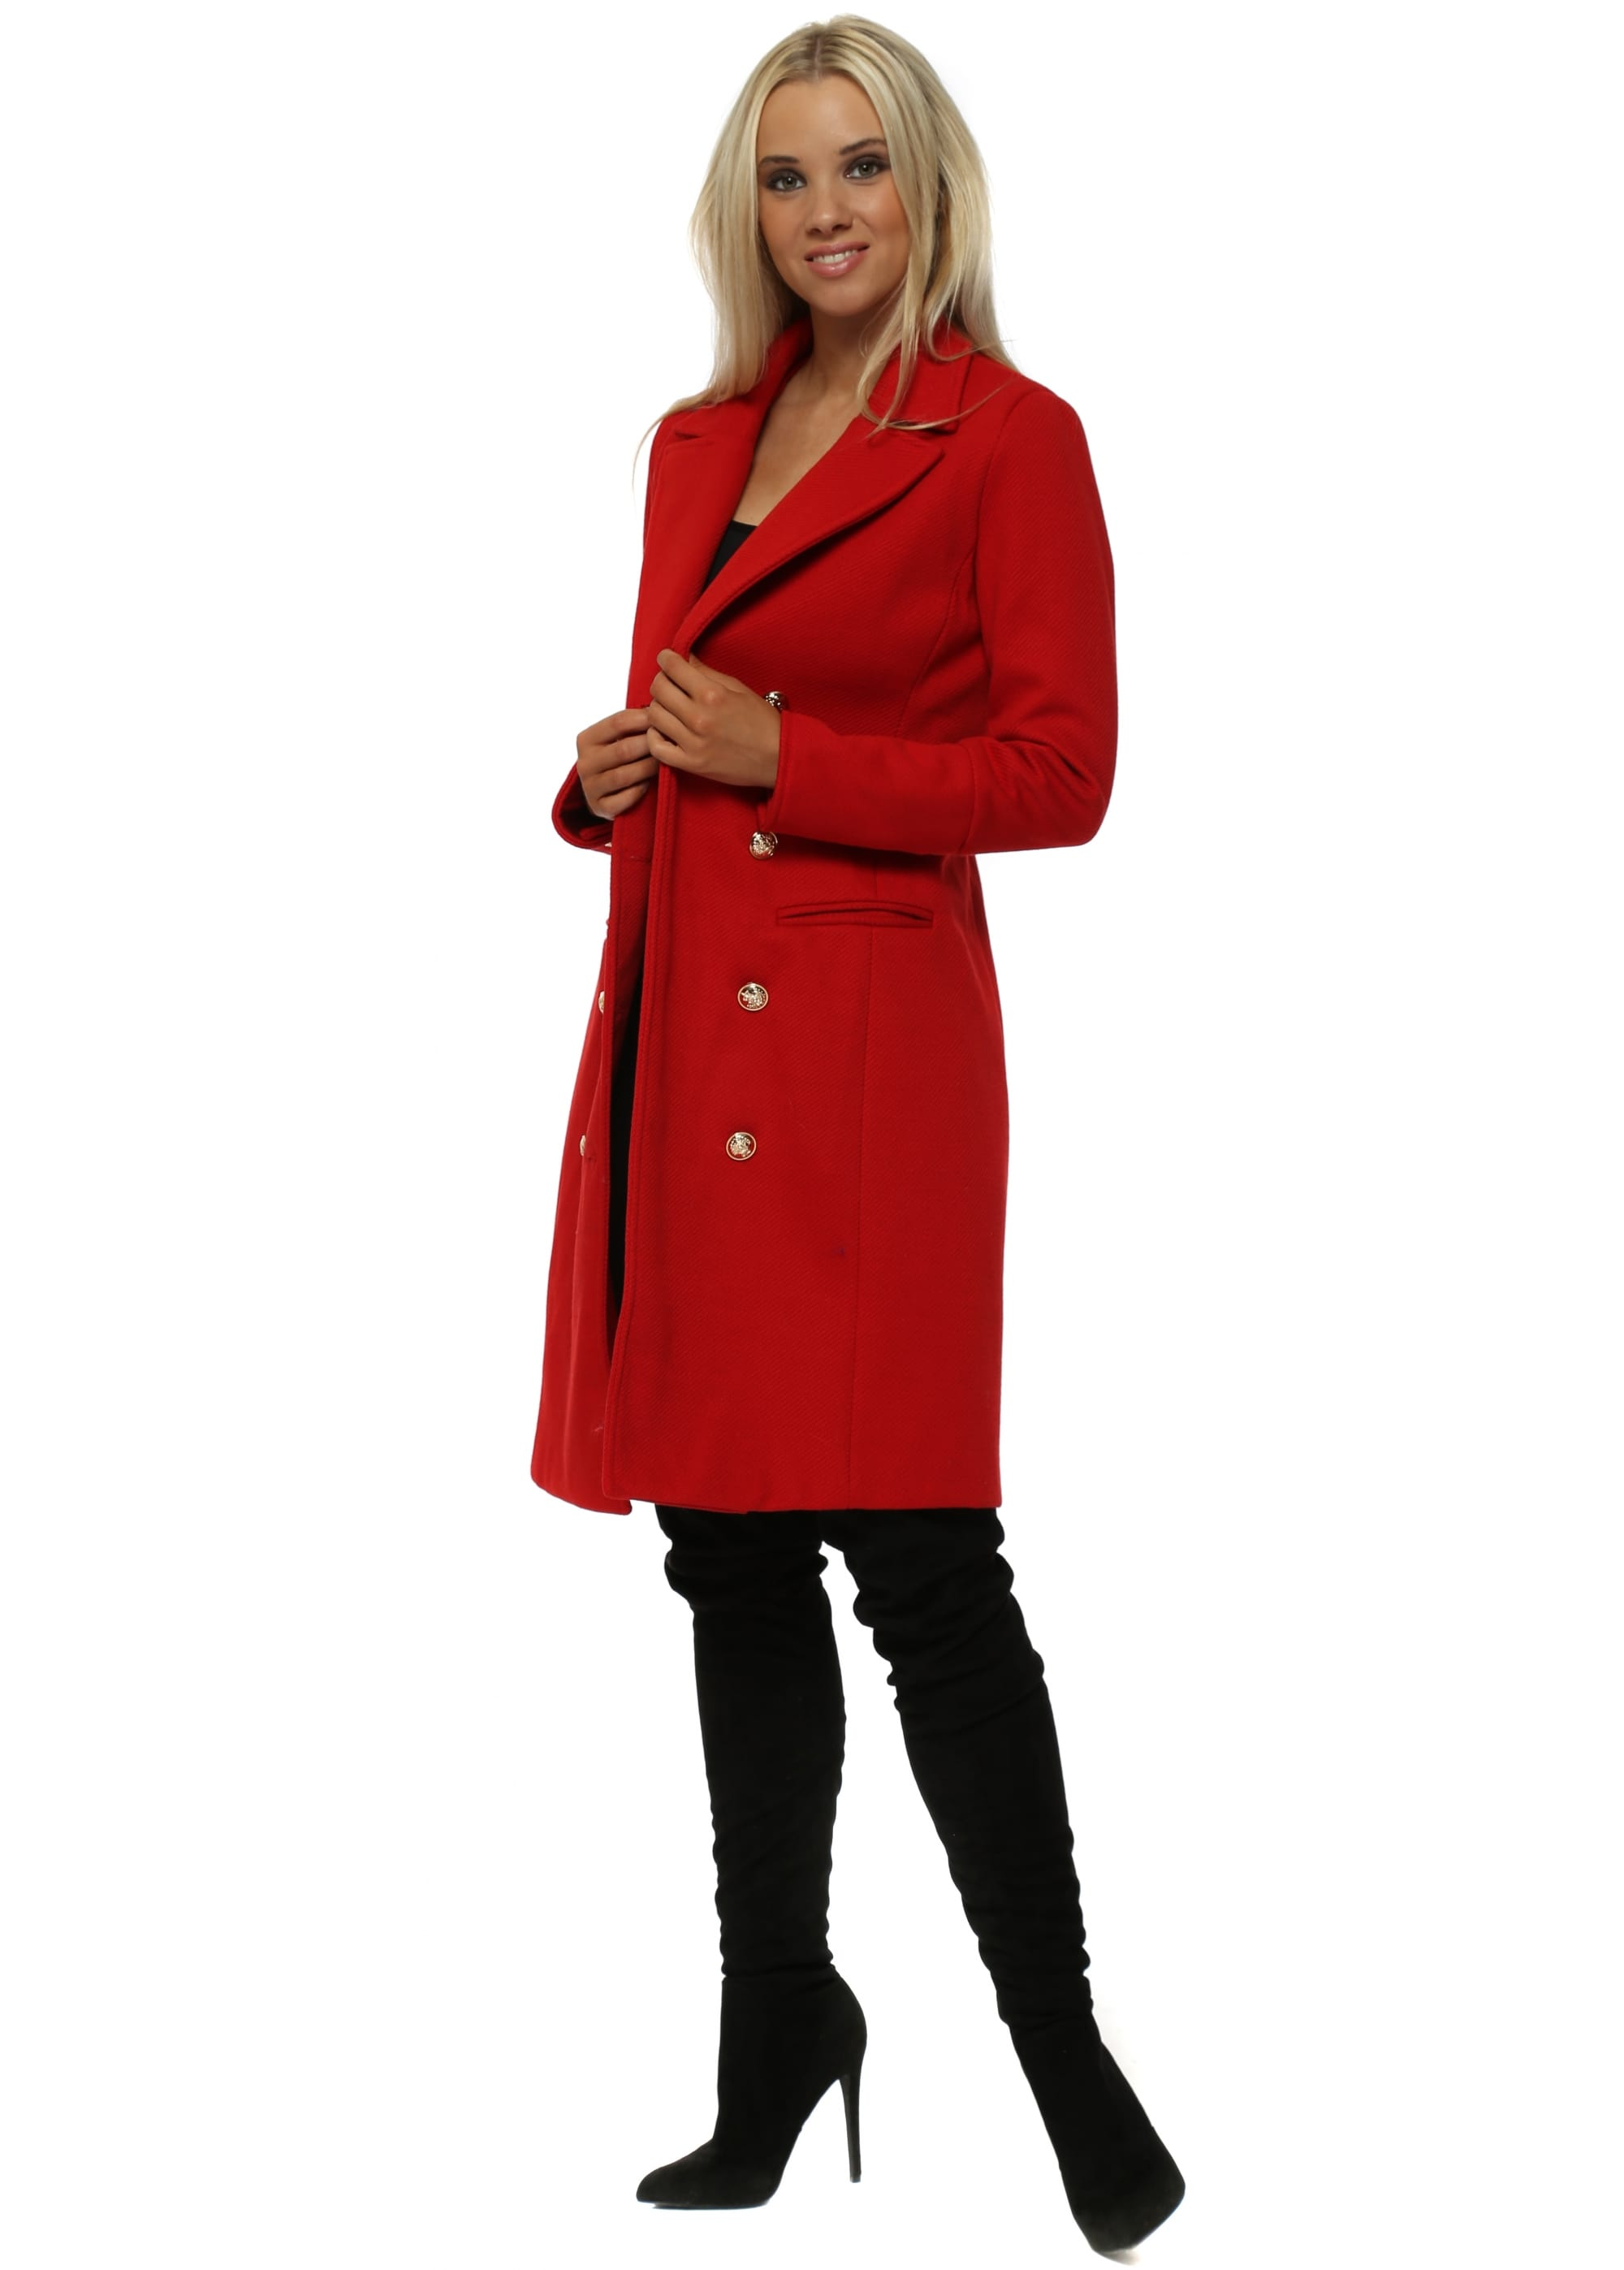 fdd1d6a17 Lucy Wang Gold Button Double Breasted Tailored Red Coat